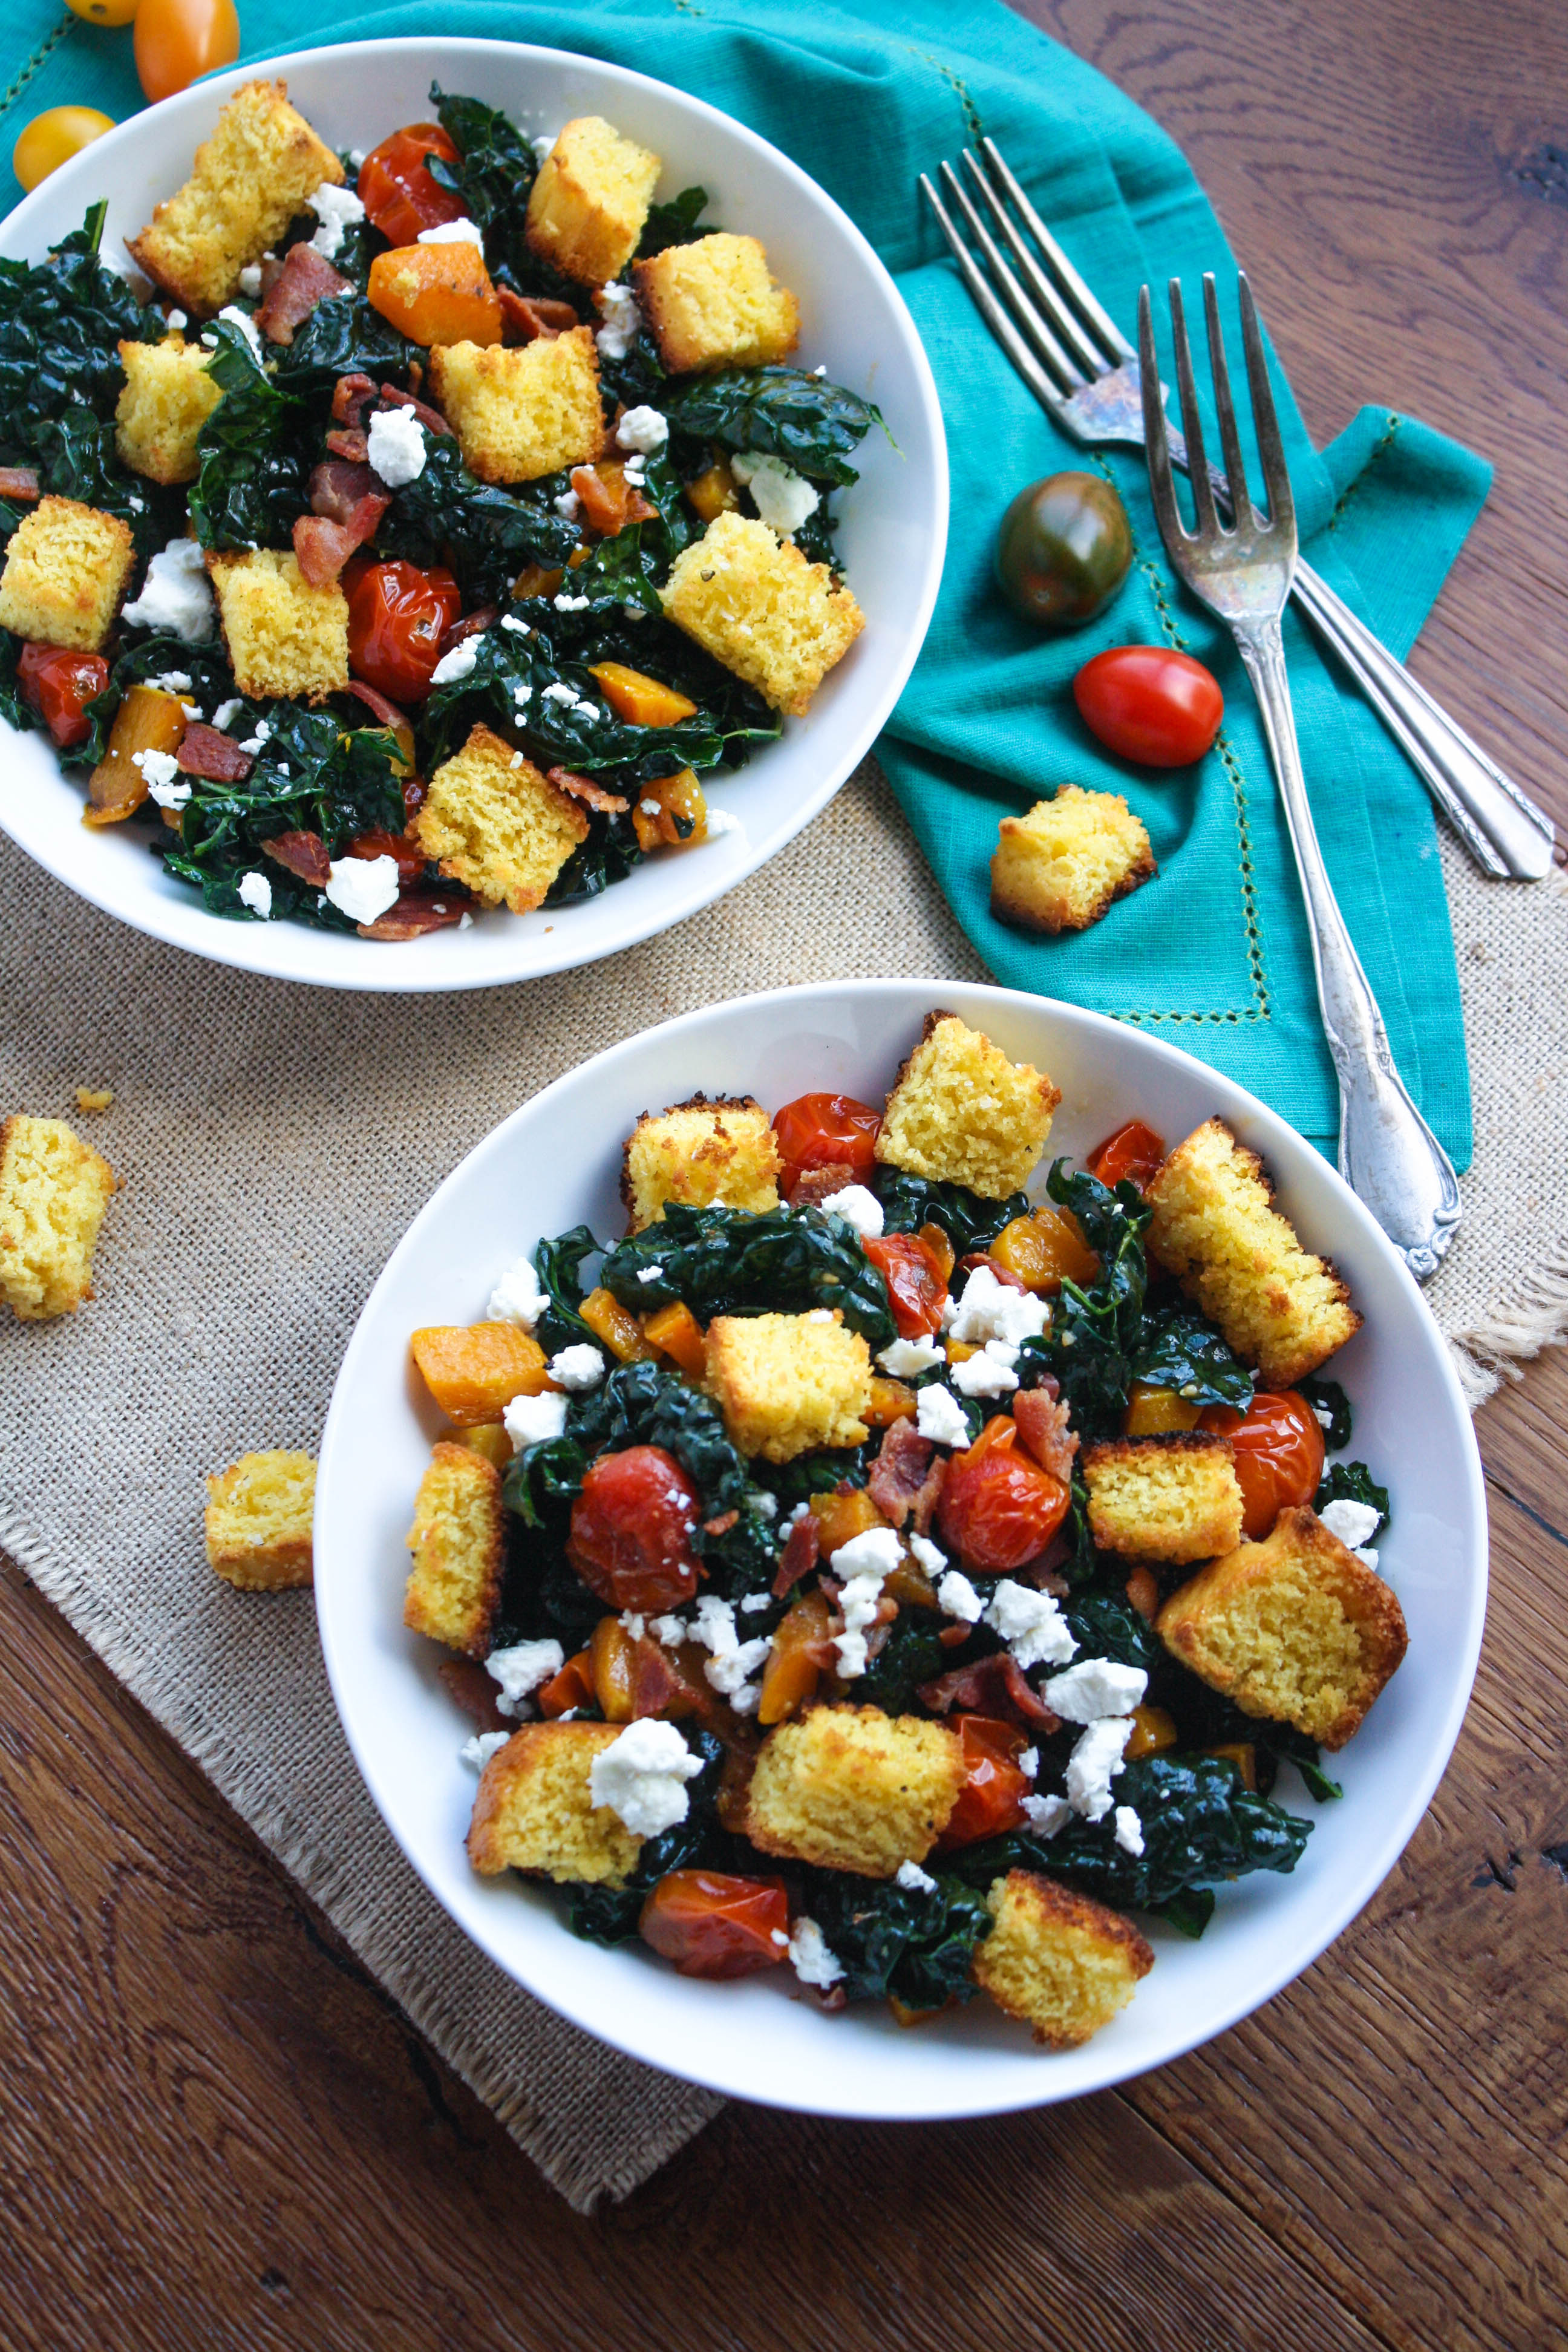 Kale and Cornbread Crouton Salad is a great day-after Thanksgiving dish. You'll love the cornbread croutons in this kale salad!